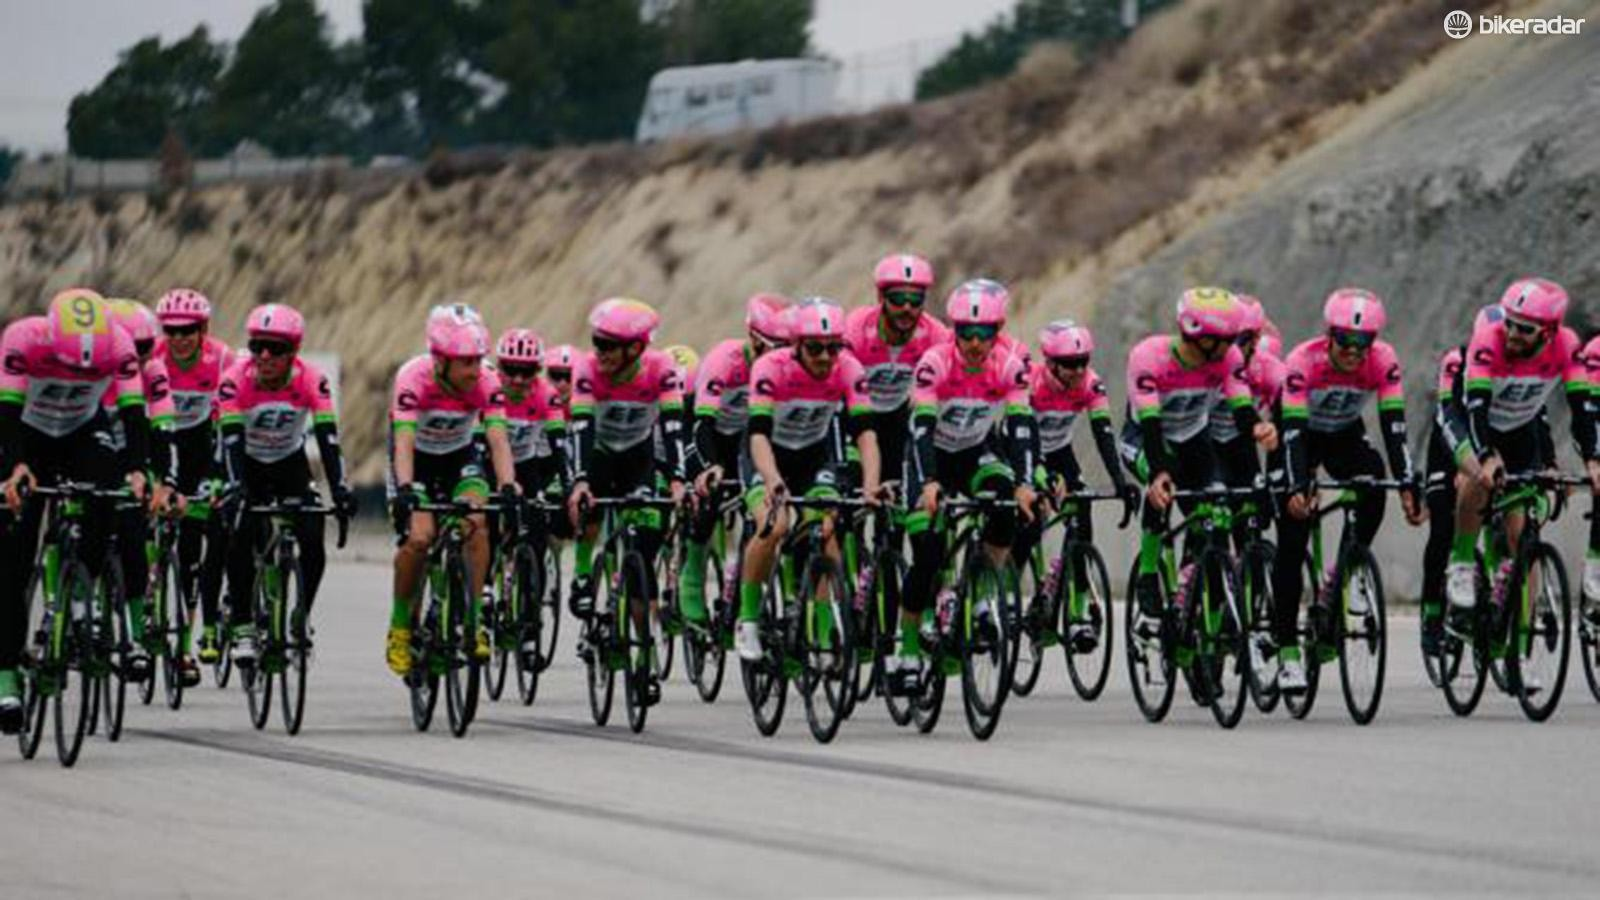 The complete 2018 EF Education First-Drapac squad